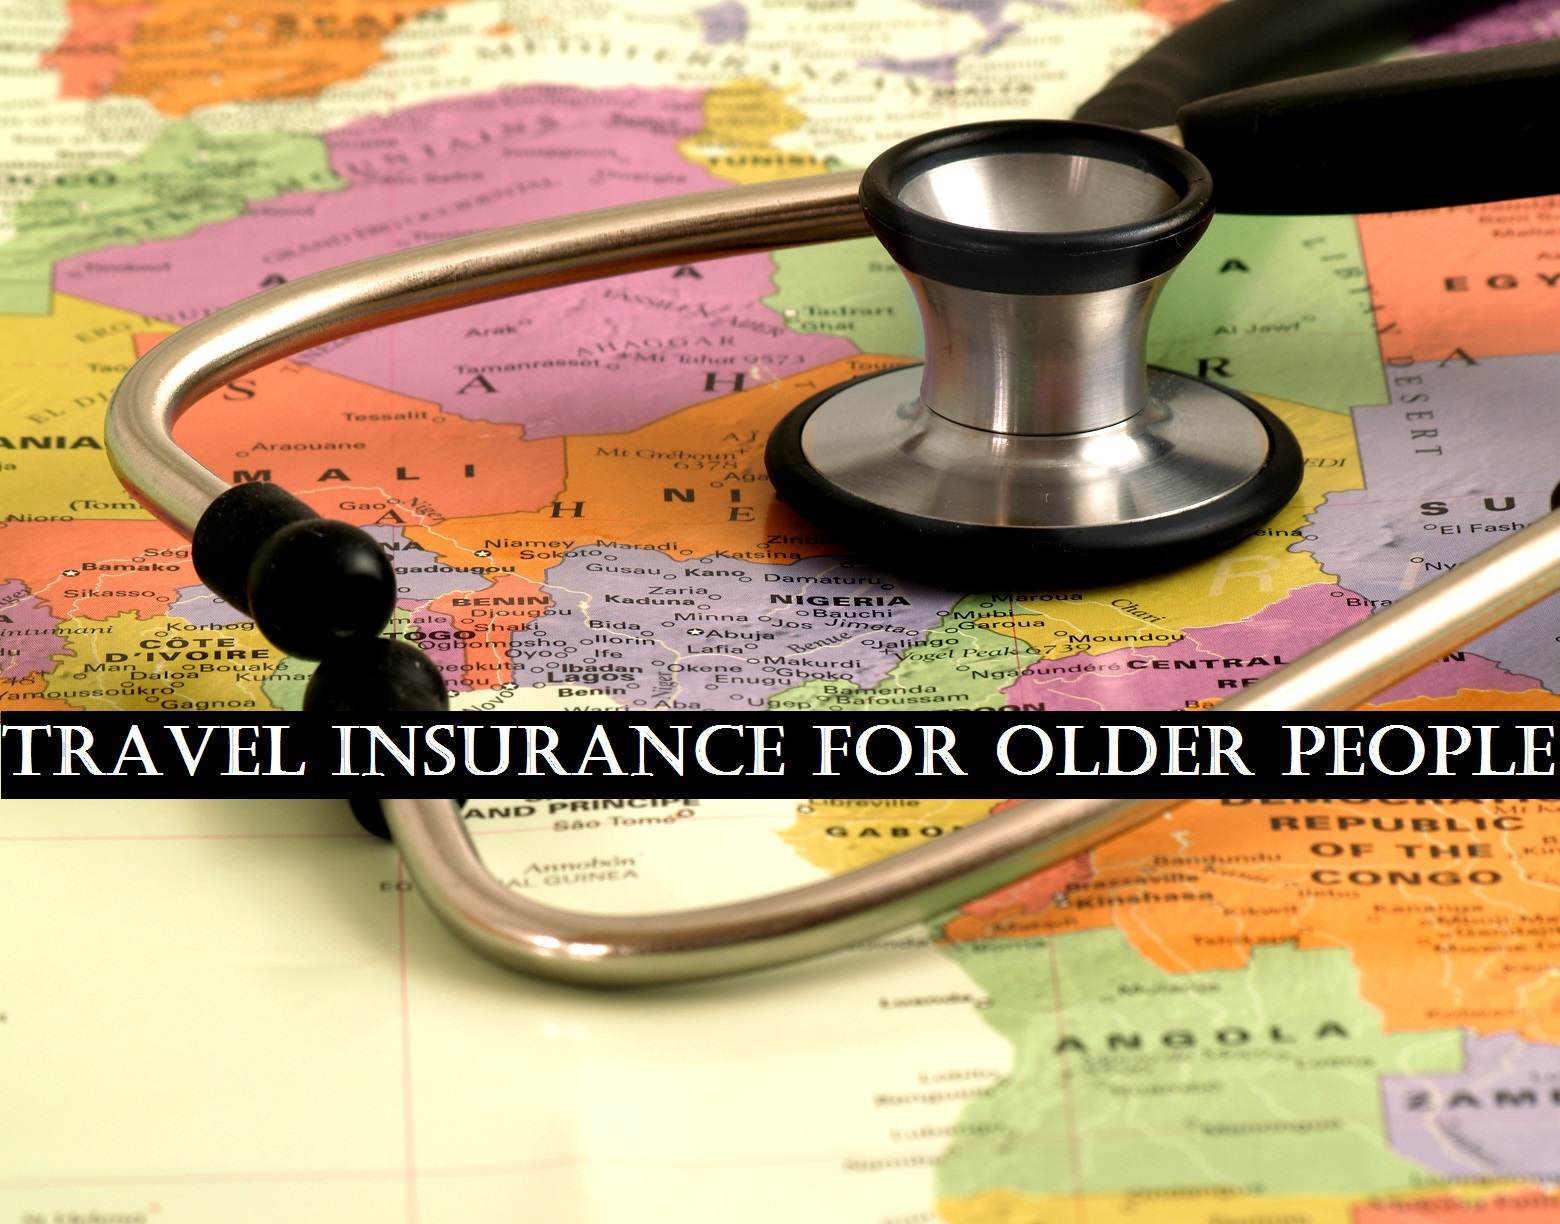 Travel Insurance for Older People